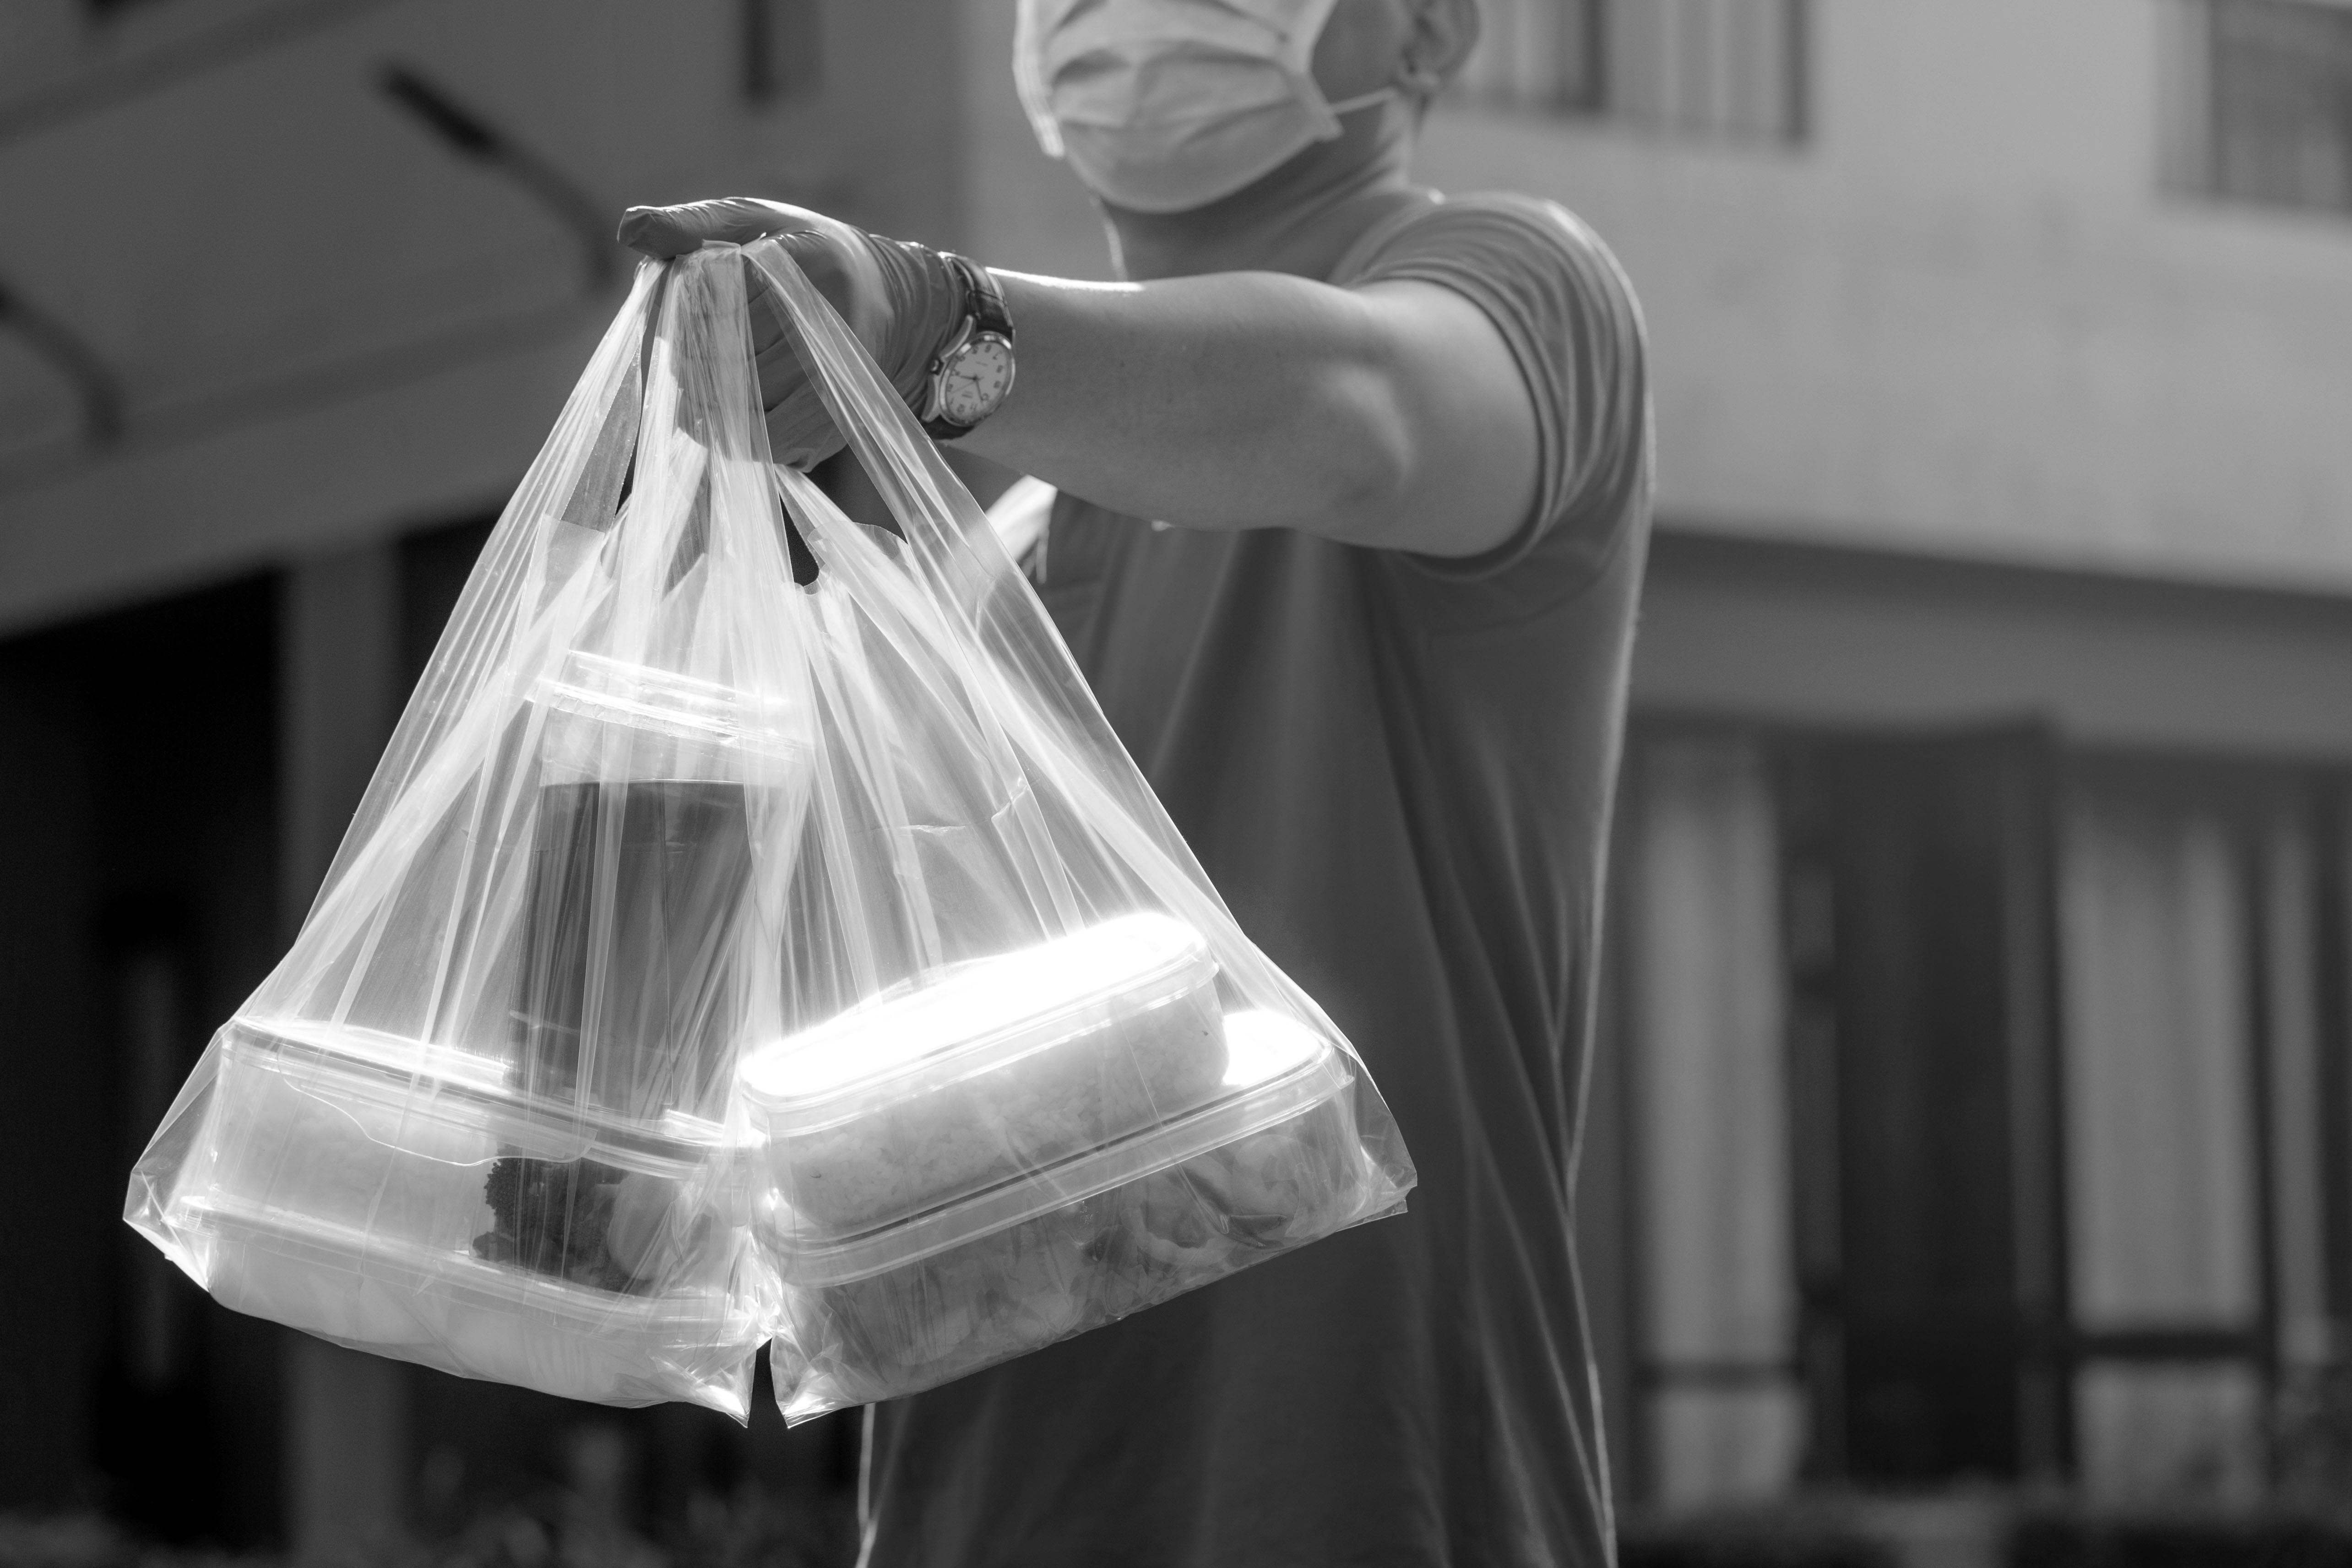 A black and white image of a clear bag containing four full takeout containers and a drink.